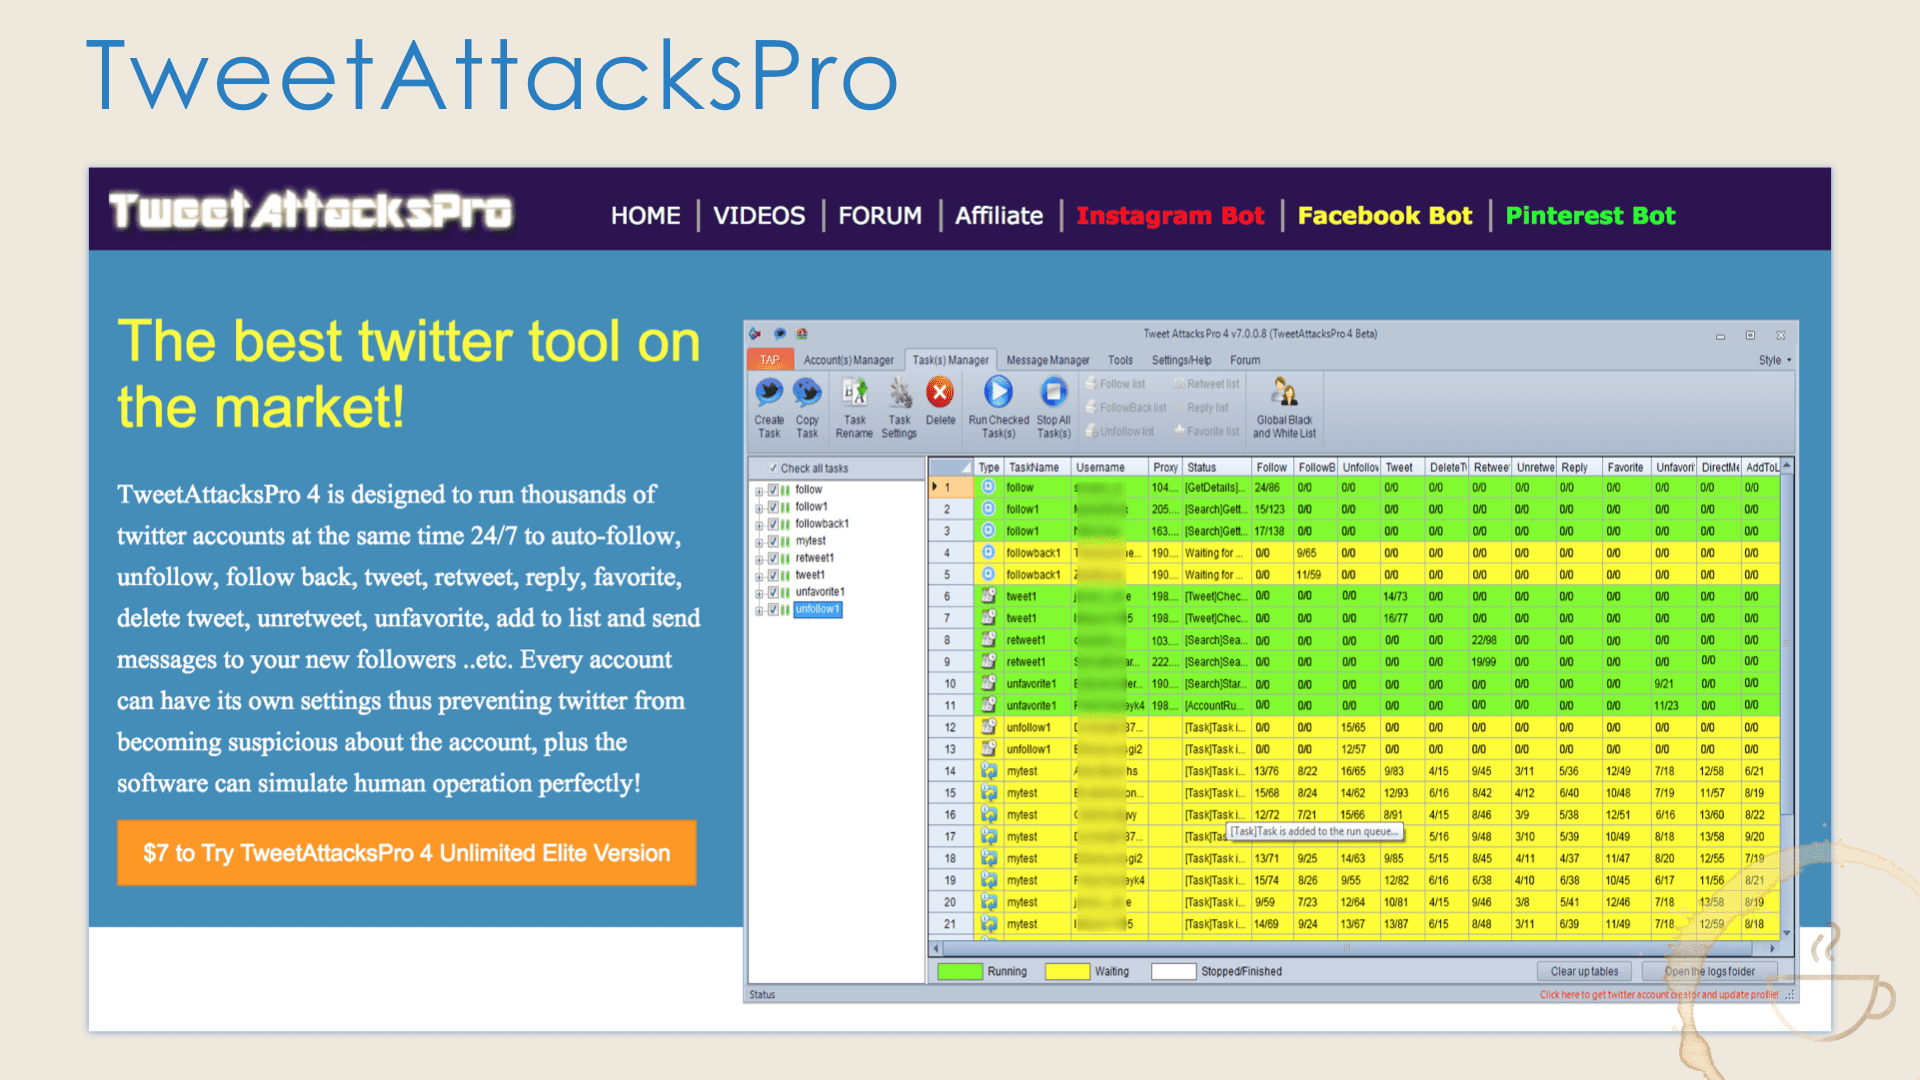 TweetAttacksPro, the best Twitter tool for the Twitter daredevil.